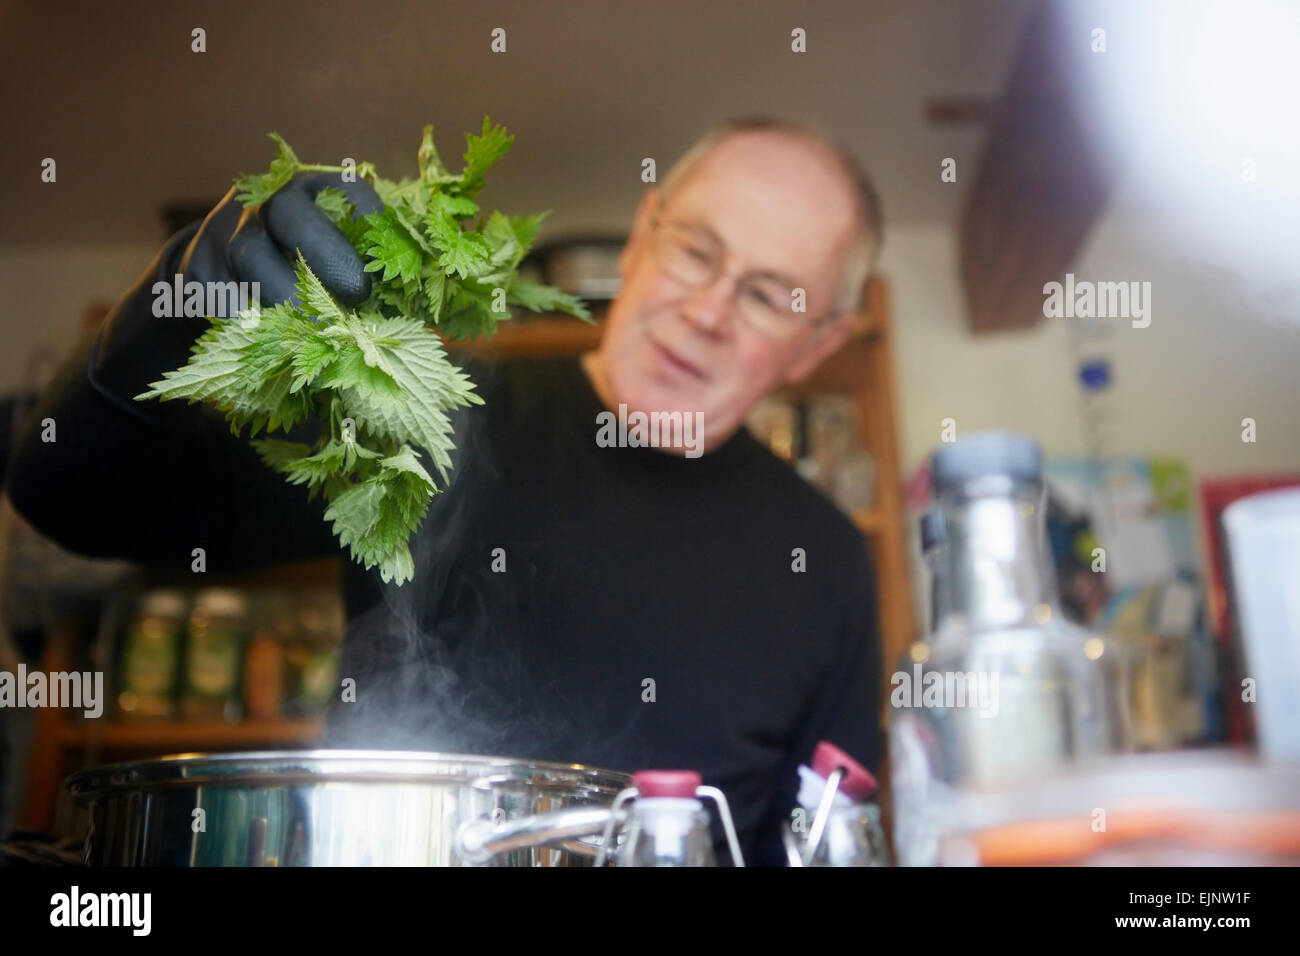 A man holding fresh foraged nettles with a gloved hand, blanching them in a pot. - Stock Image